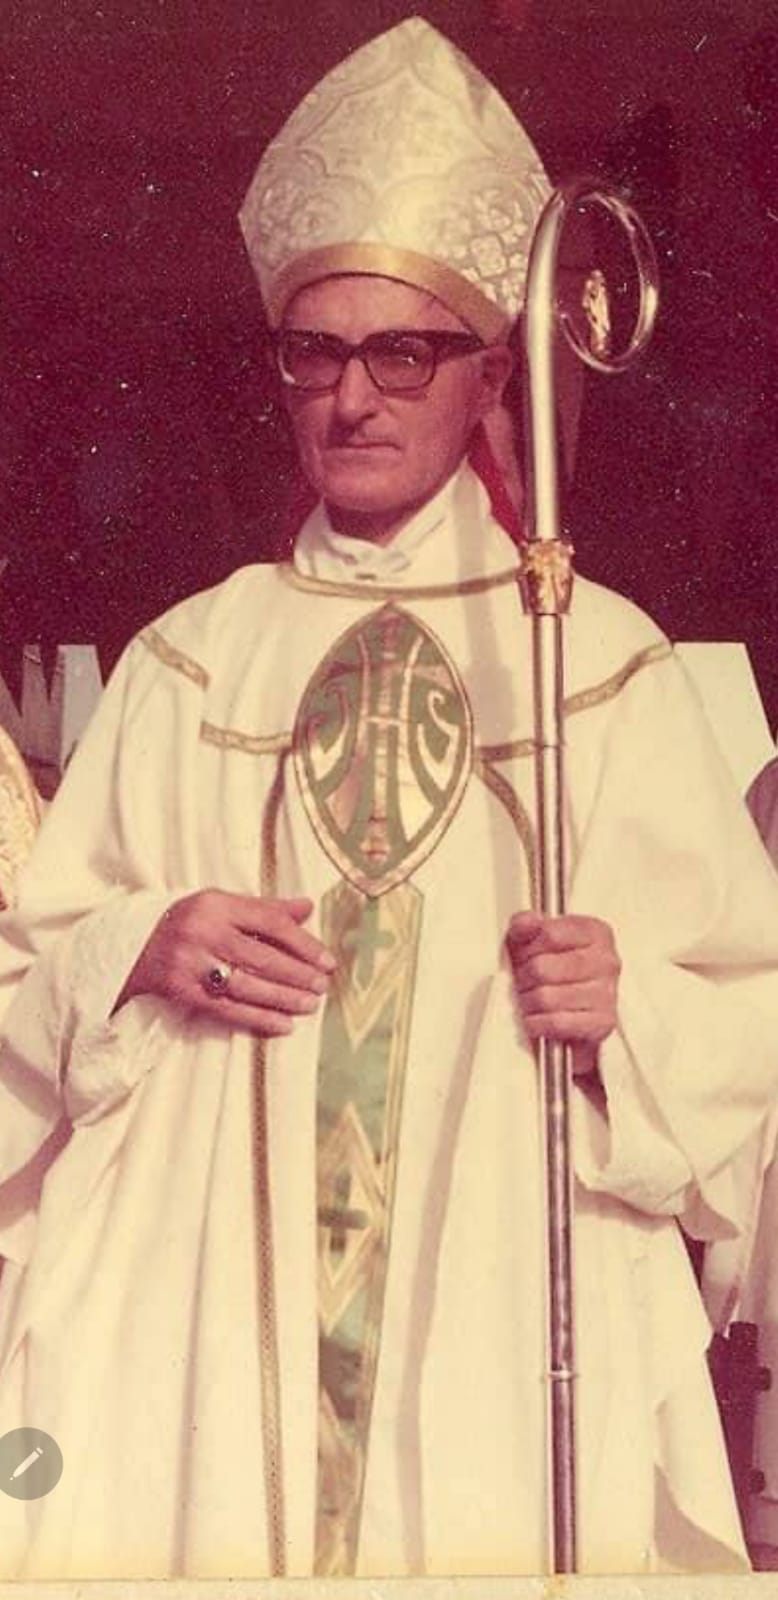 Tribute to Bishop Cleary